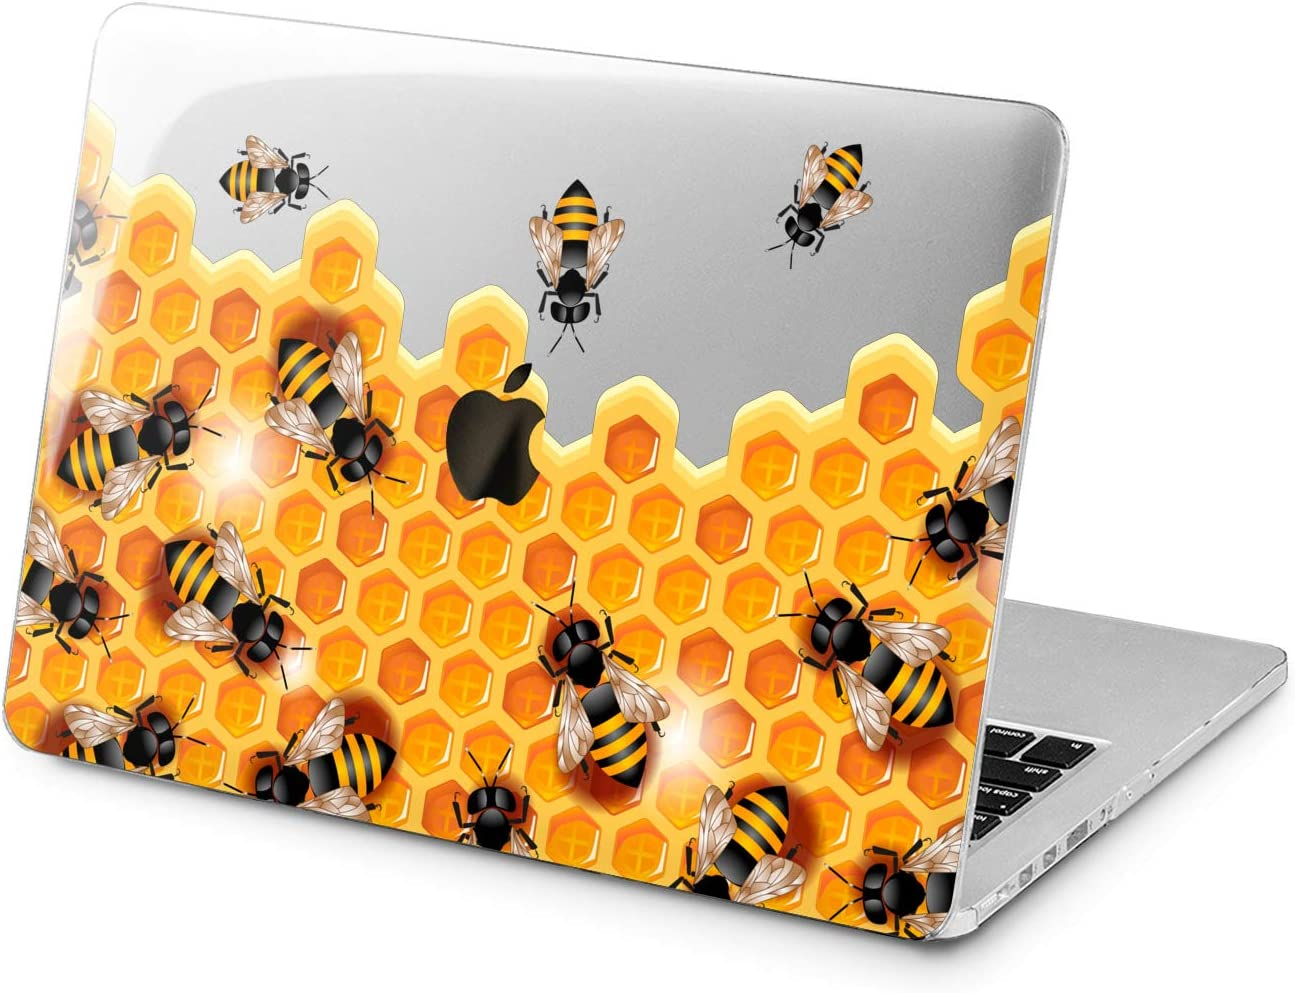 """Cavka Hard Shell Case for Apple MacBook Pro 13"""" 2019 15"""" 2018 Air 13"""" 2020 Retina 2015 Mac 11"""" Mac 12"""" Honey Bee Protective Cute Yellow Cover Insect Print Laptop Sweet Hexagon Pattern Plastic Design"""